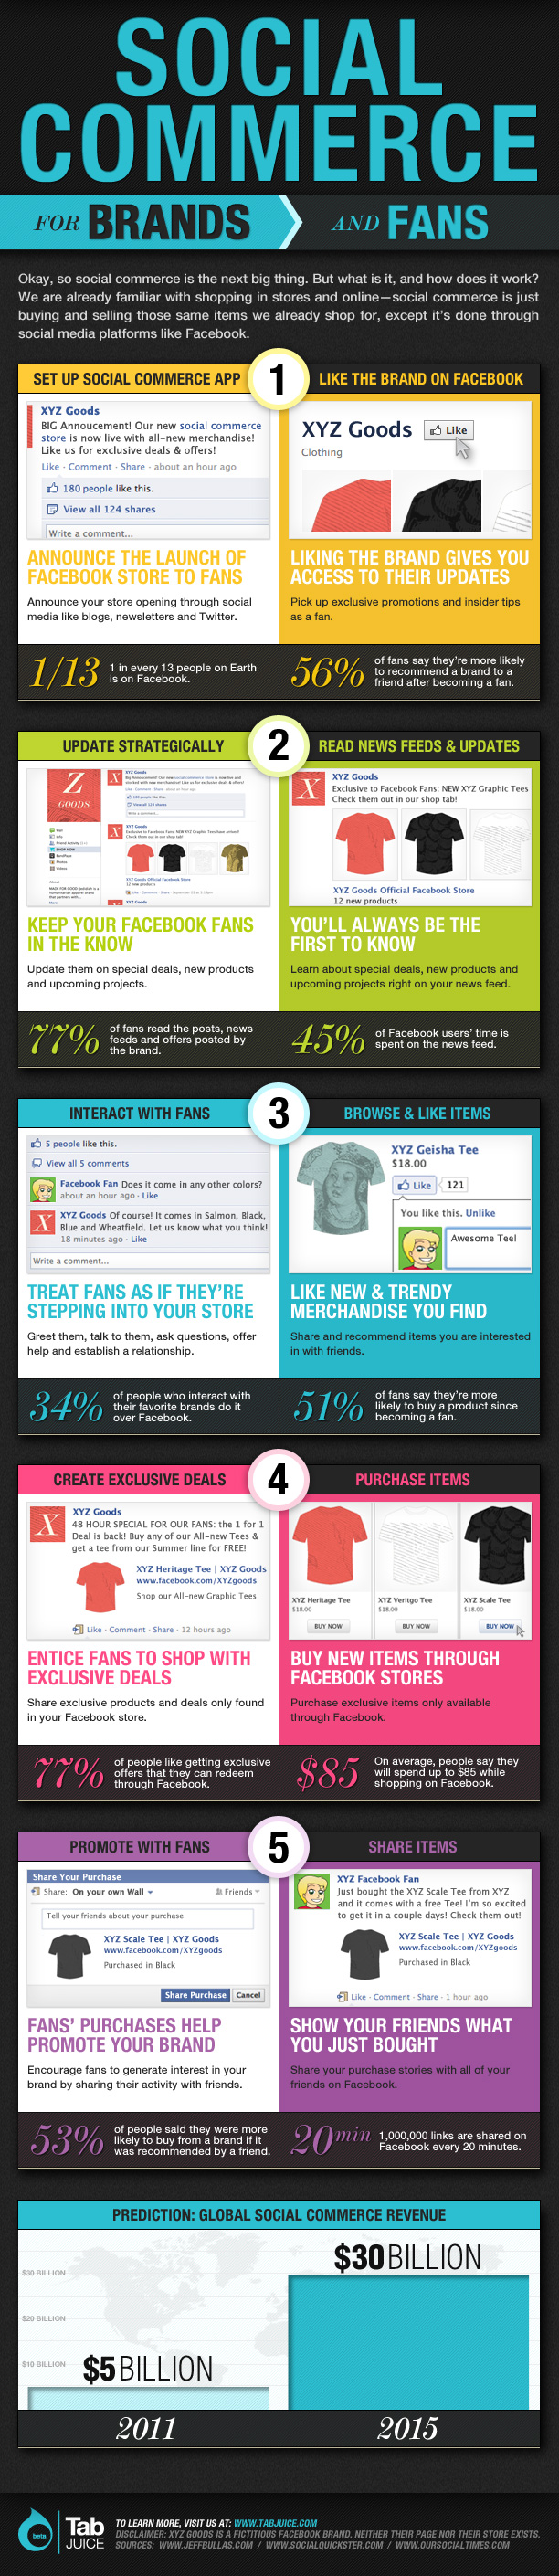 Social Commerce Statistics1 Social Commerce Statistics, Strategies and Examples